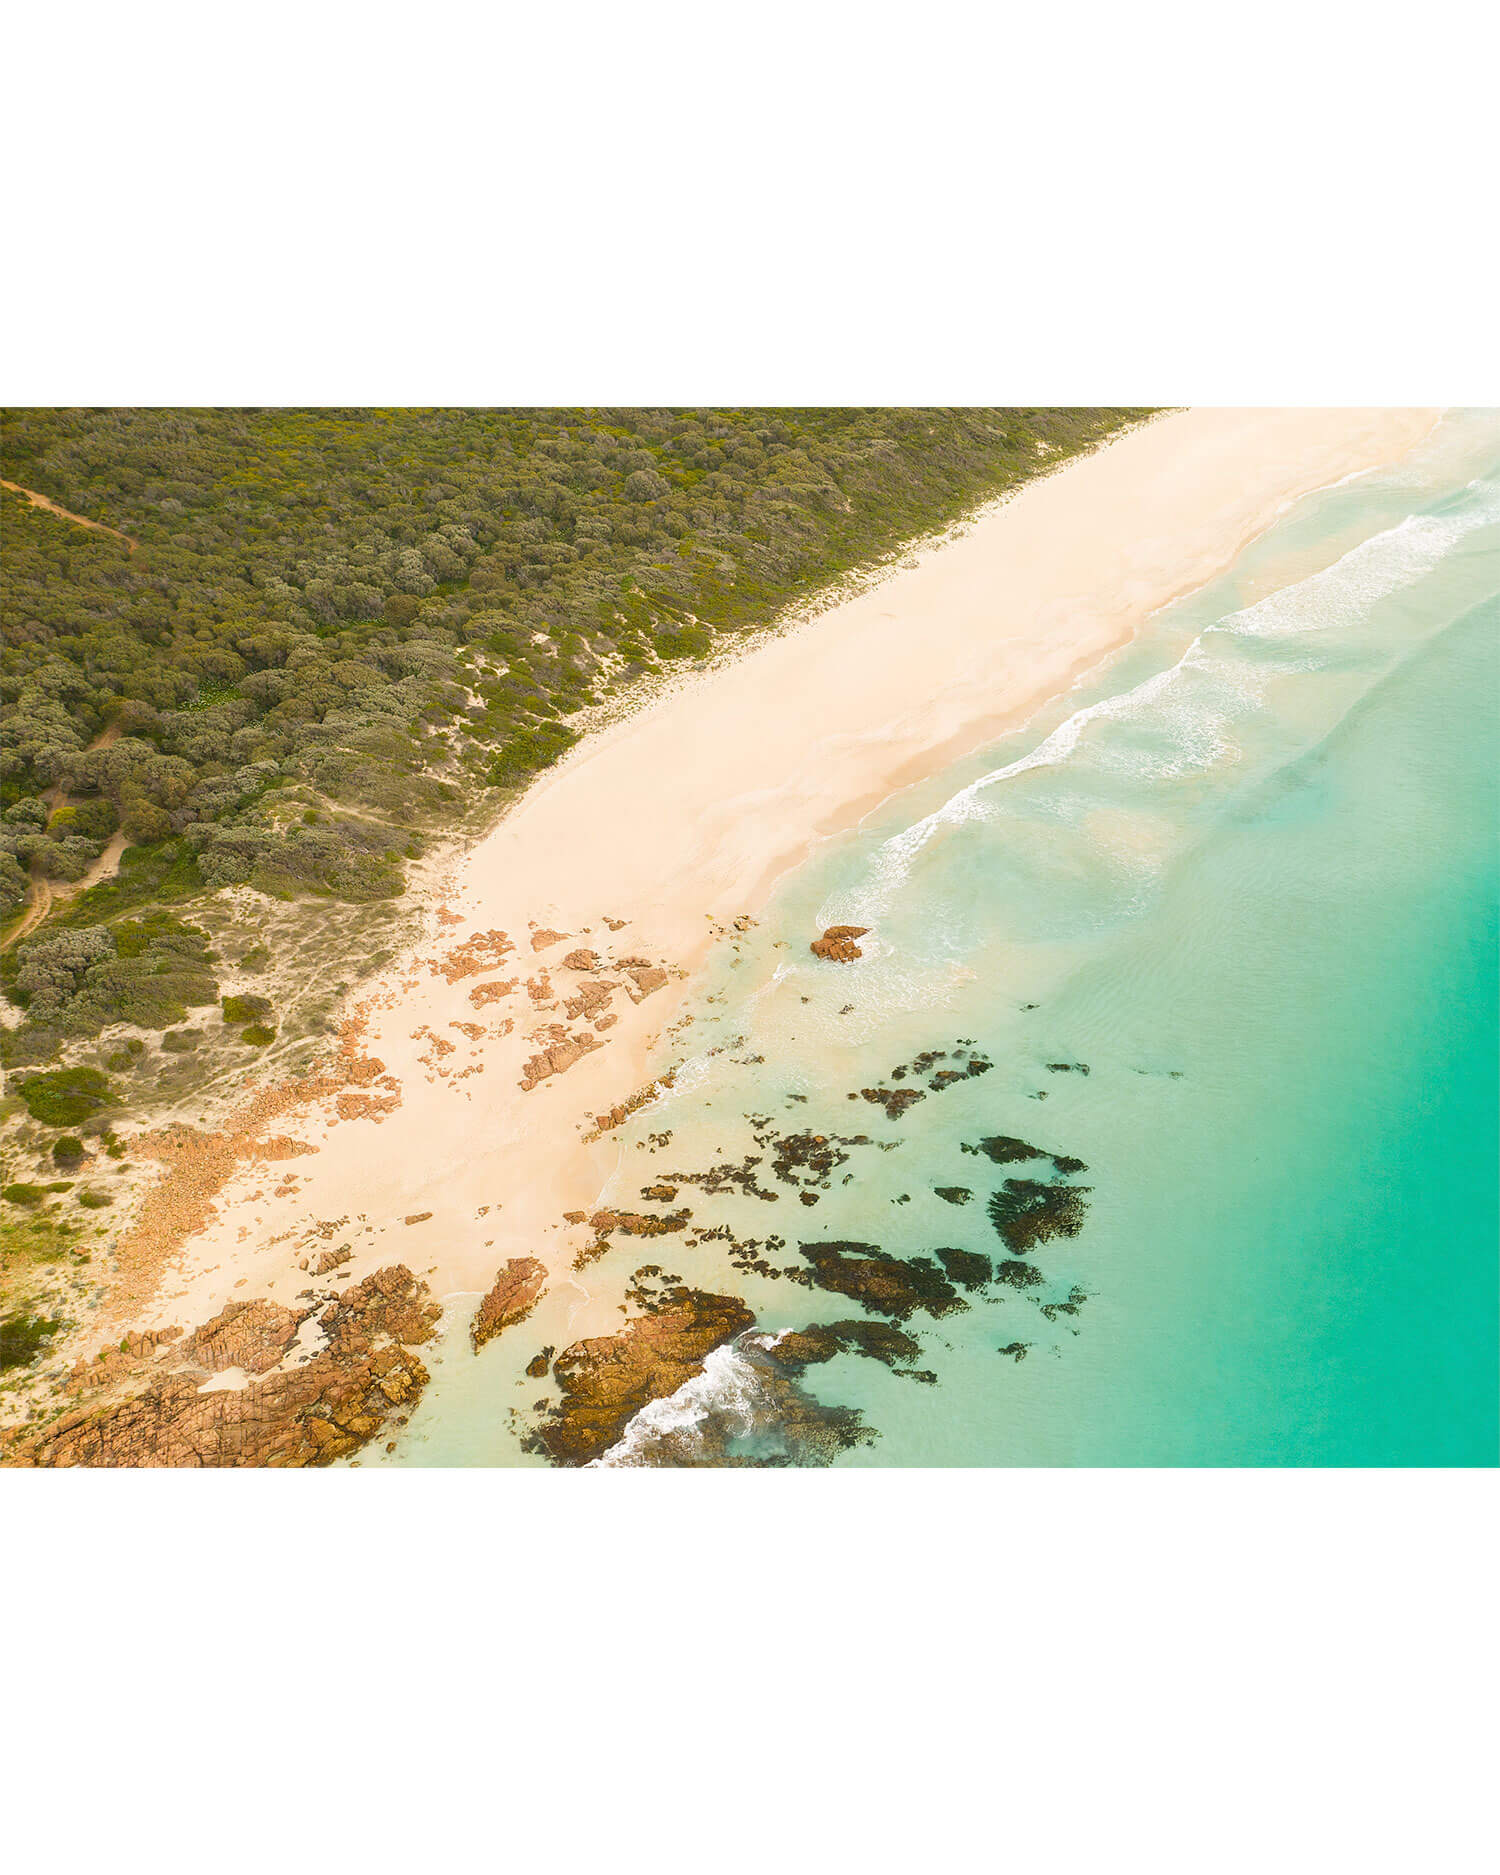 Azure Co - Landscape and Surf Photography, Bunker Bay Western Australia